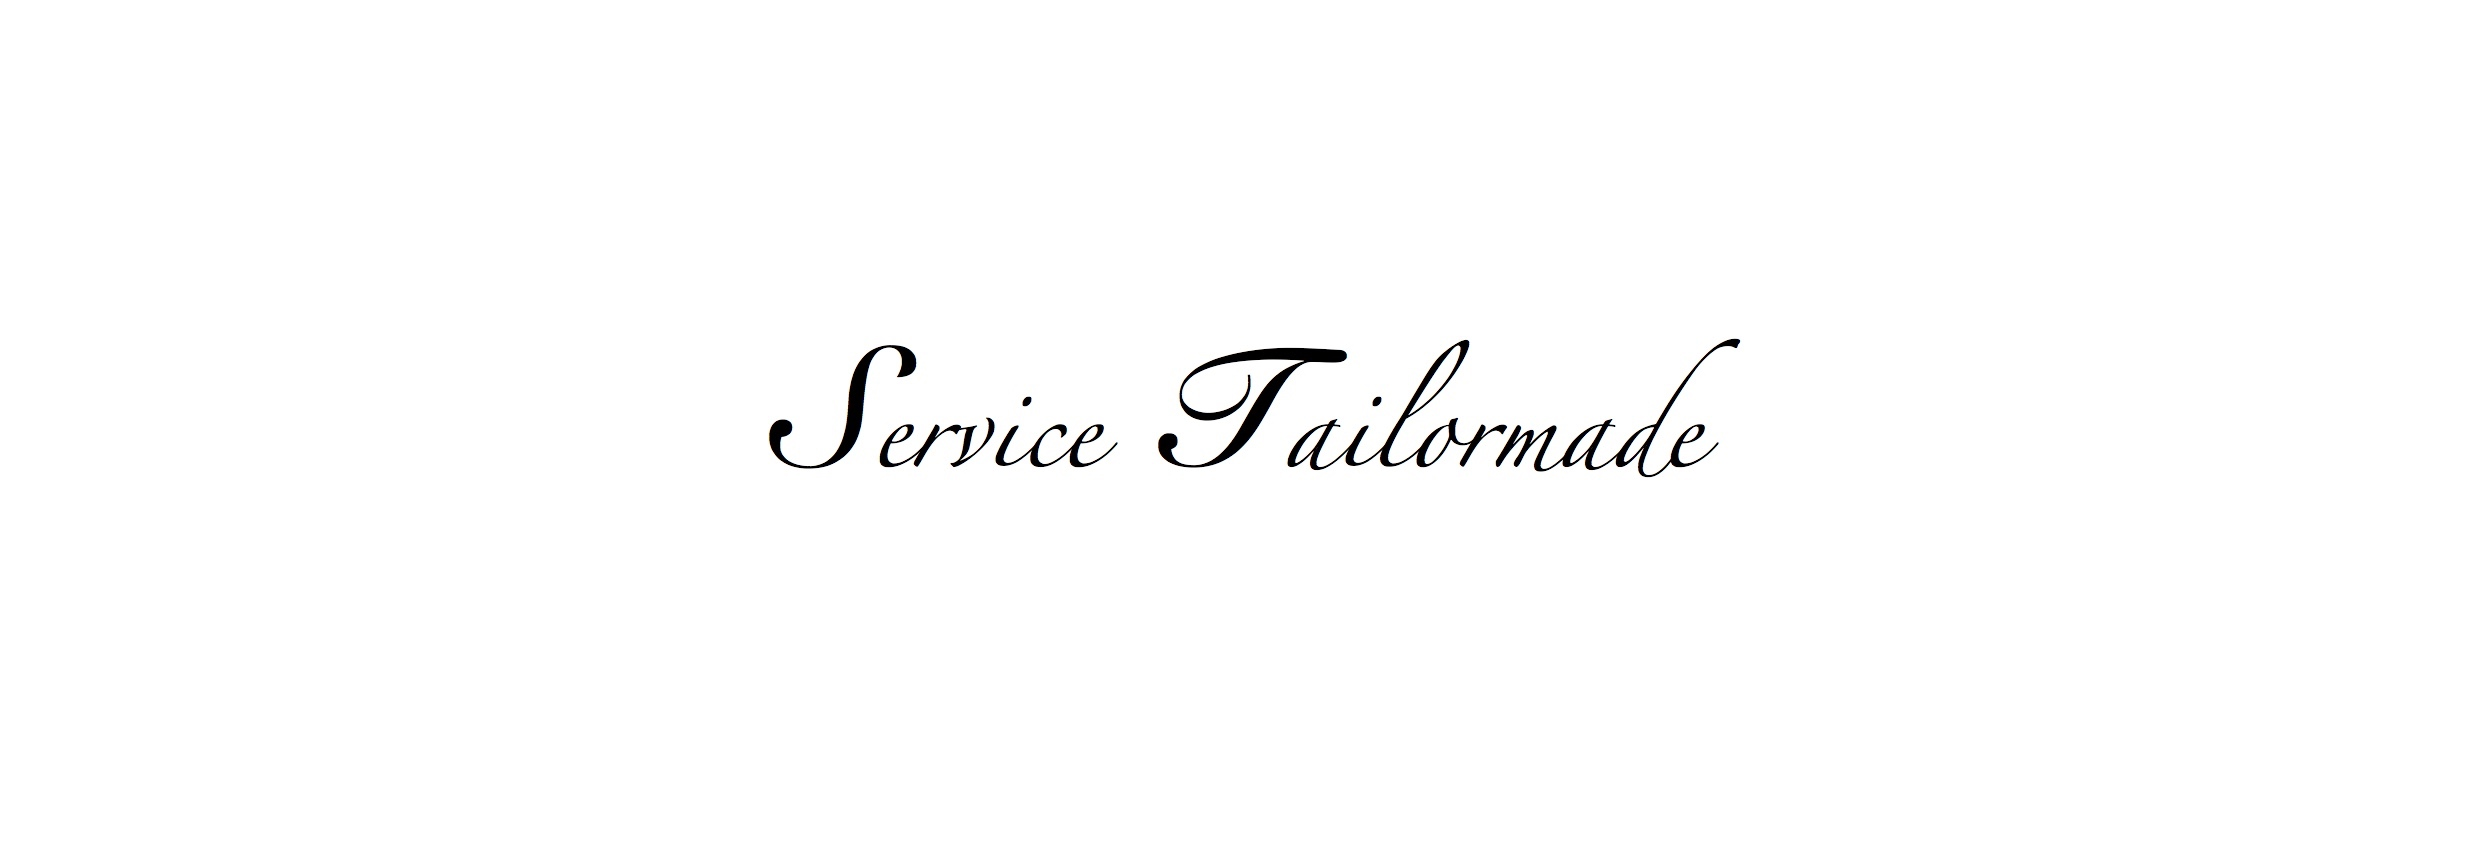 Service Tailormade de l'atelier Jawery